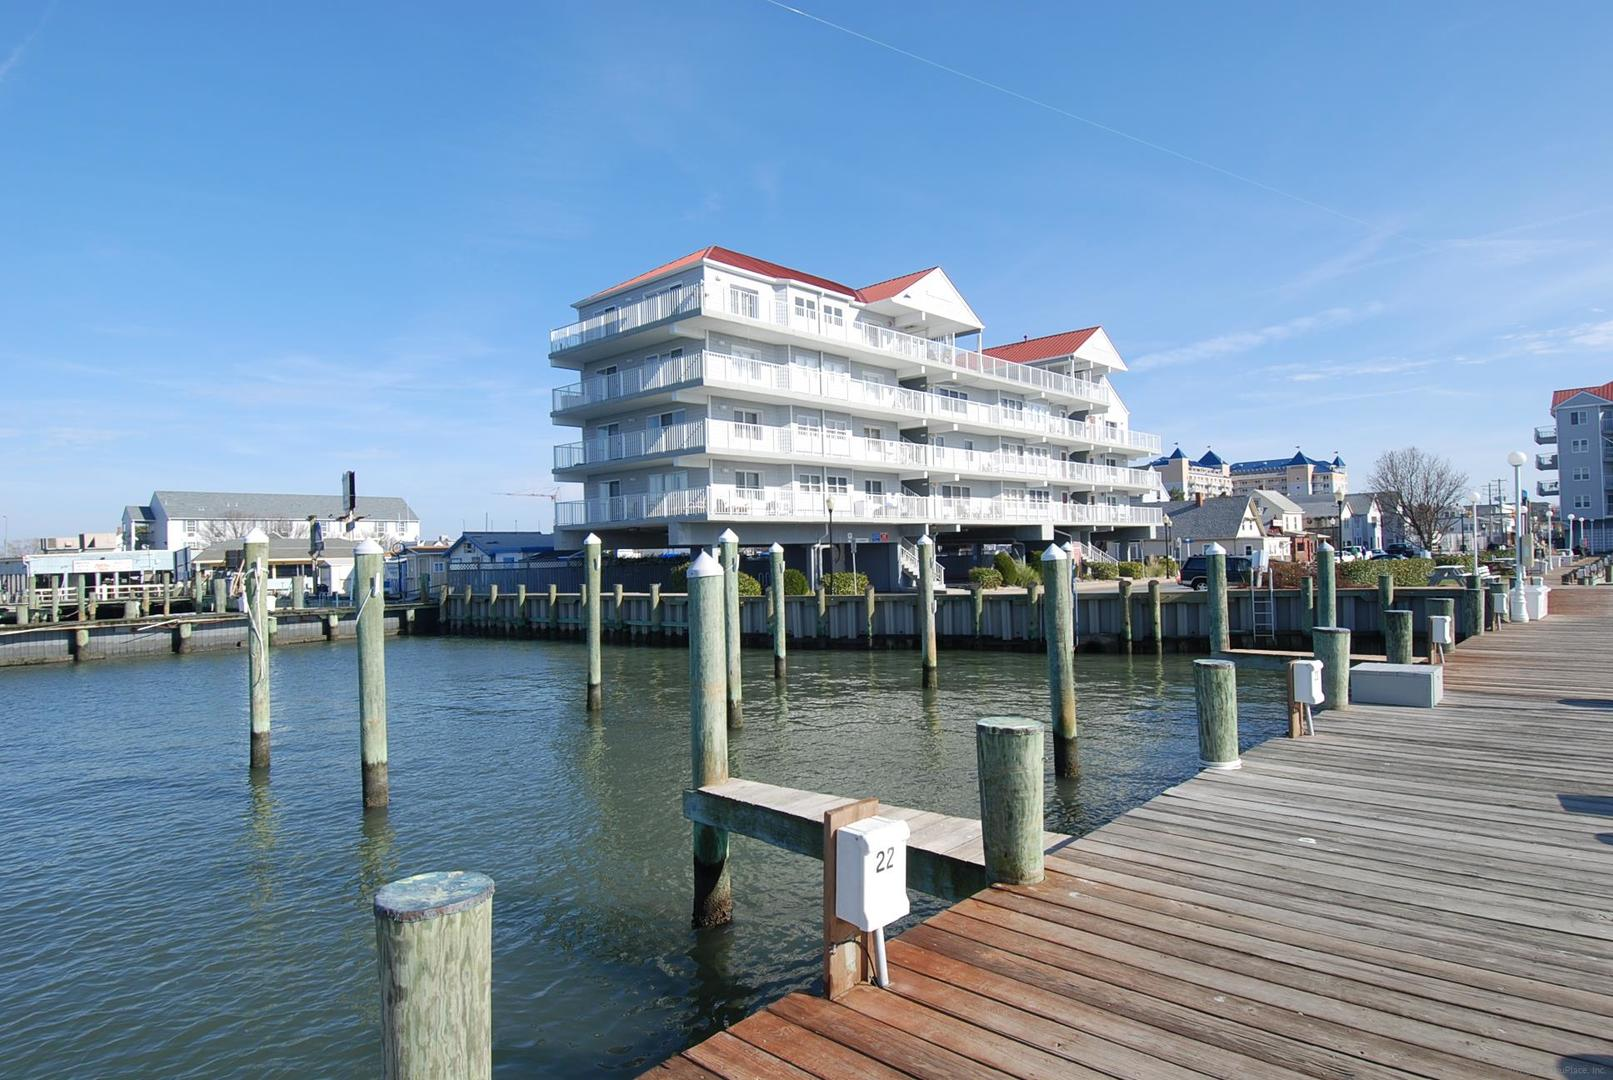 White Marlin - Exterior View from Dock